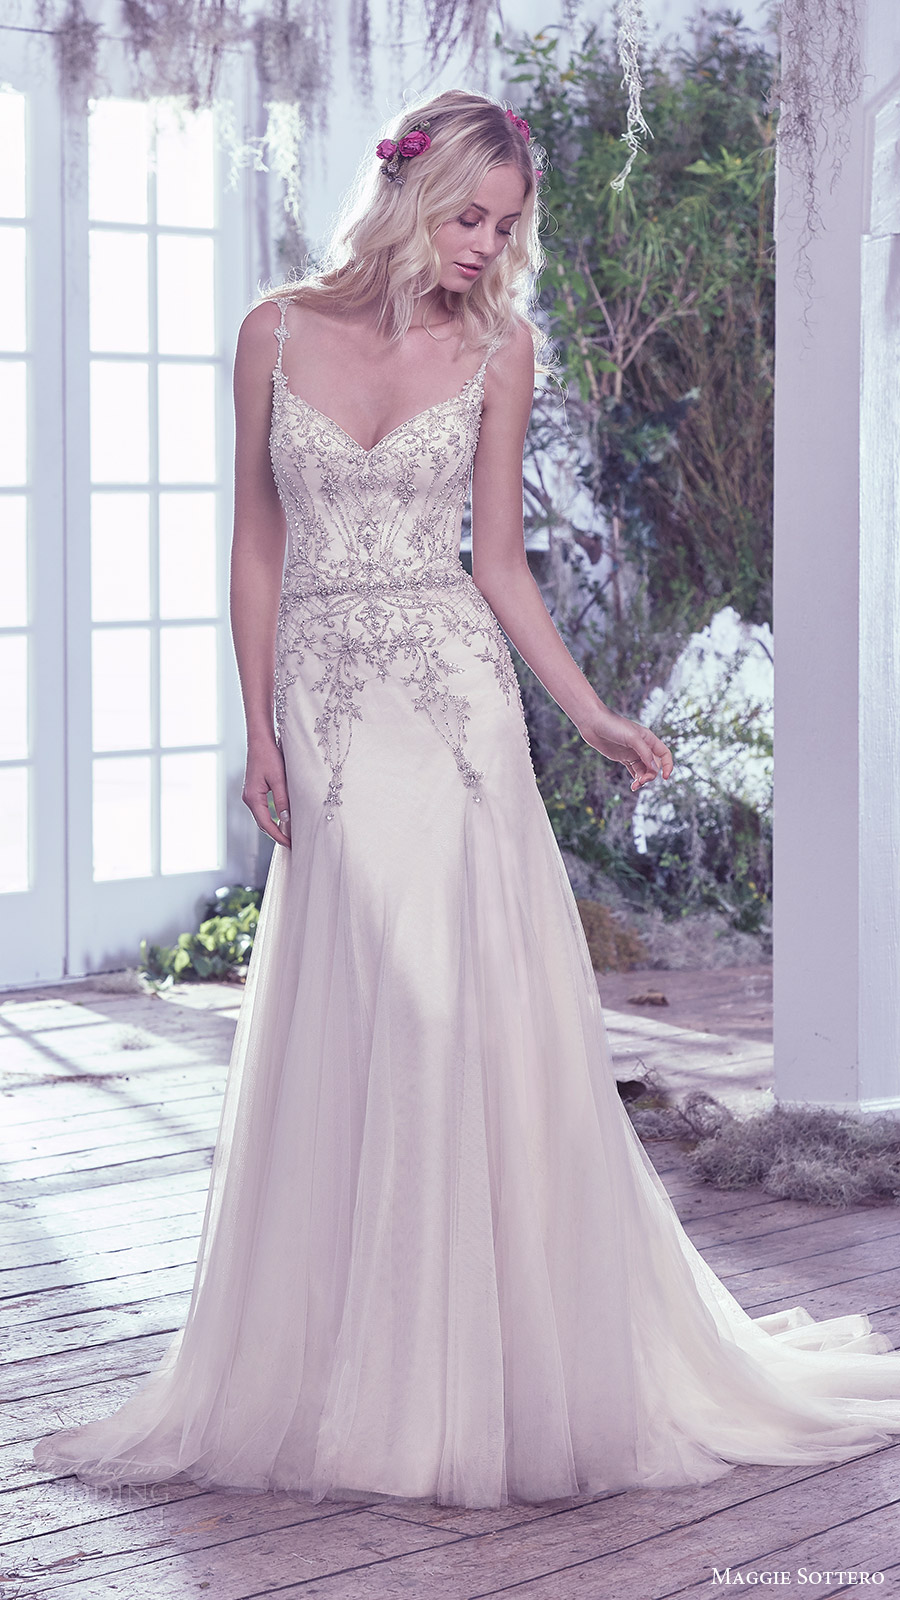 Maggie sottero wedding gowns prices bridesmaid dresses for Wedding dress shops in syracuse ny